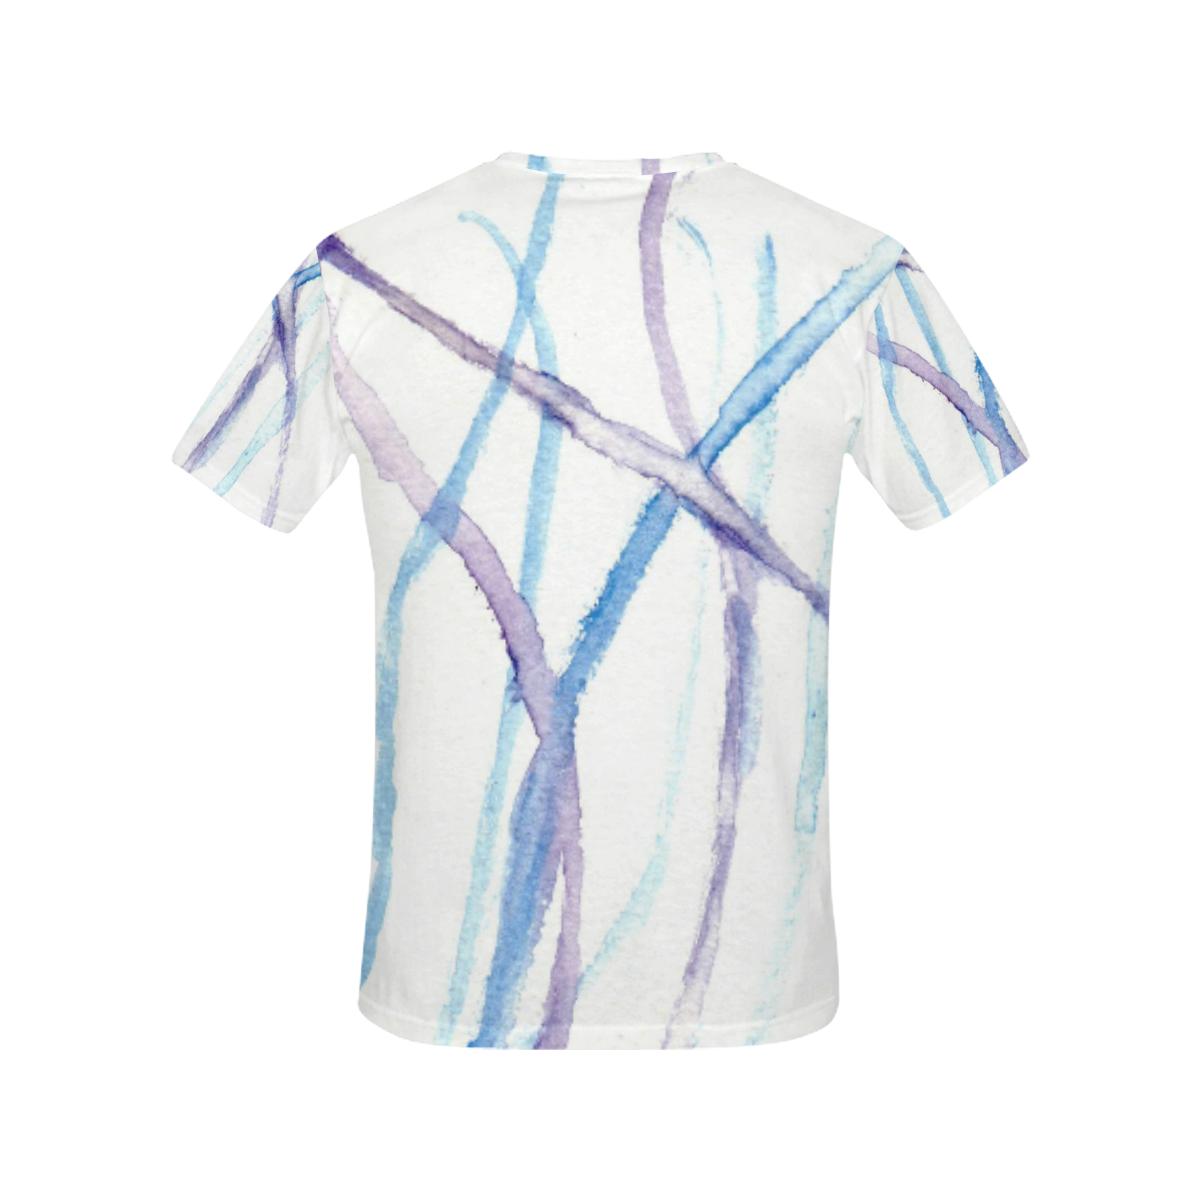 Lines All Over Print T-Shirt for Women (USA Size) (Model T40)